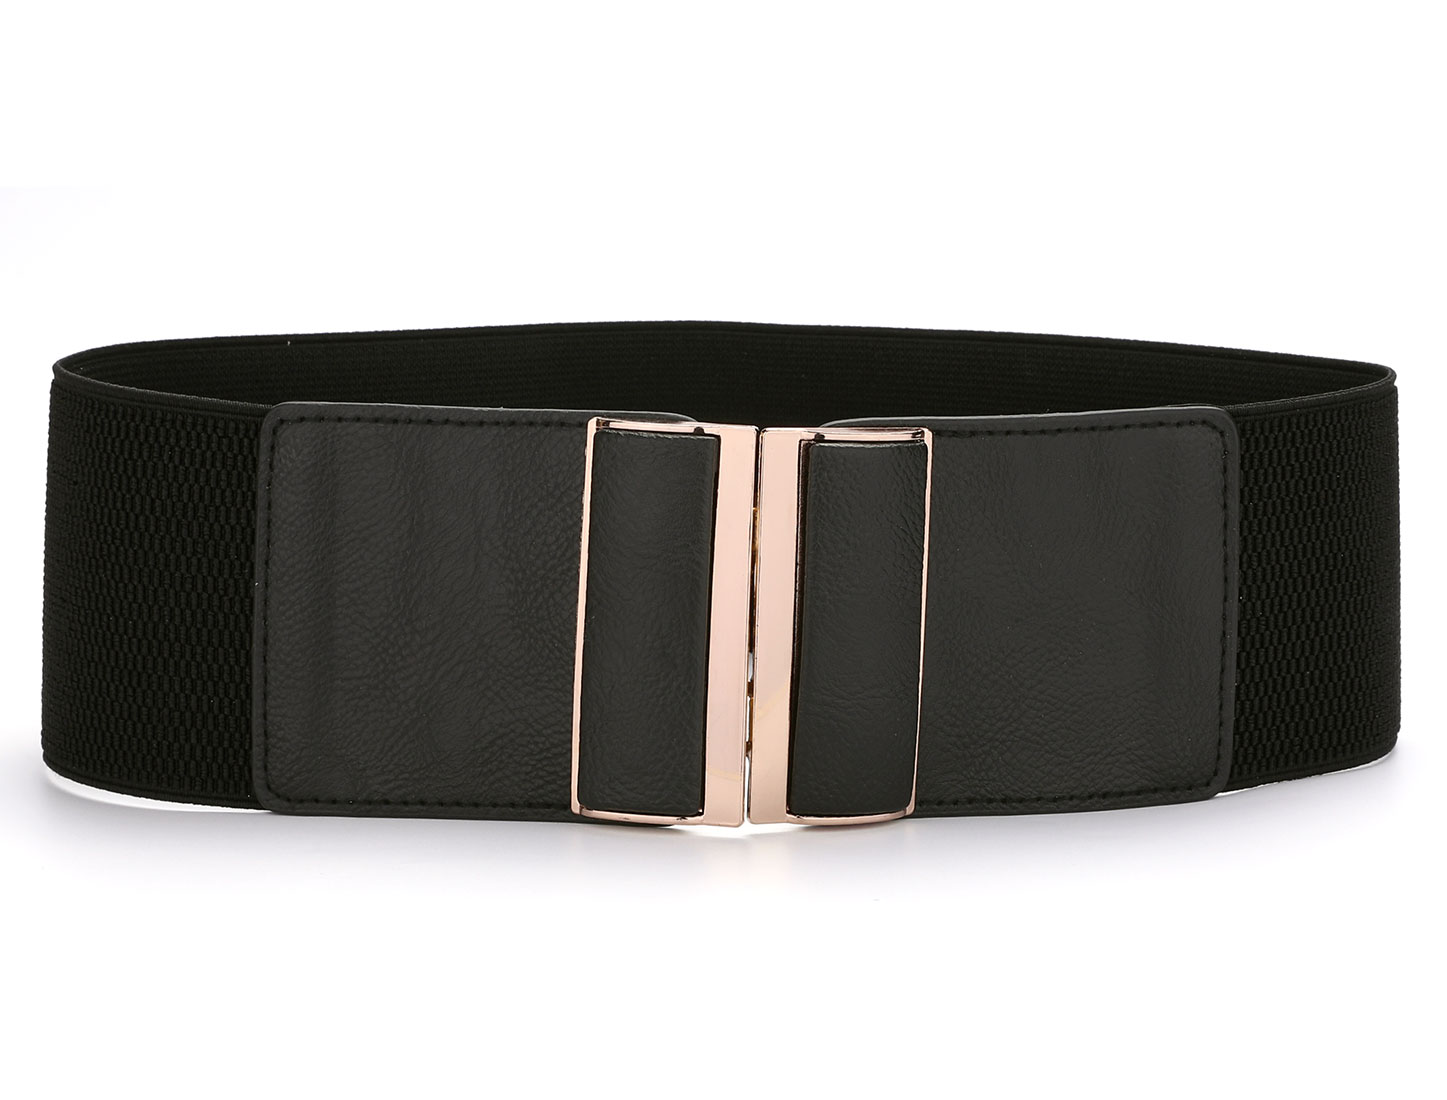 Black One Size 75mm Width Stretchy Waistband Belt for Ladies